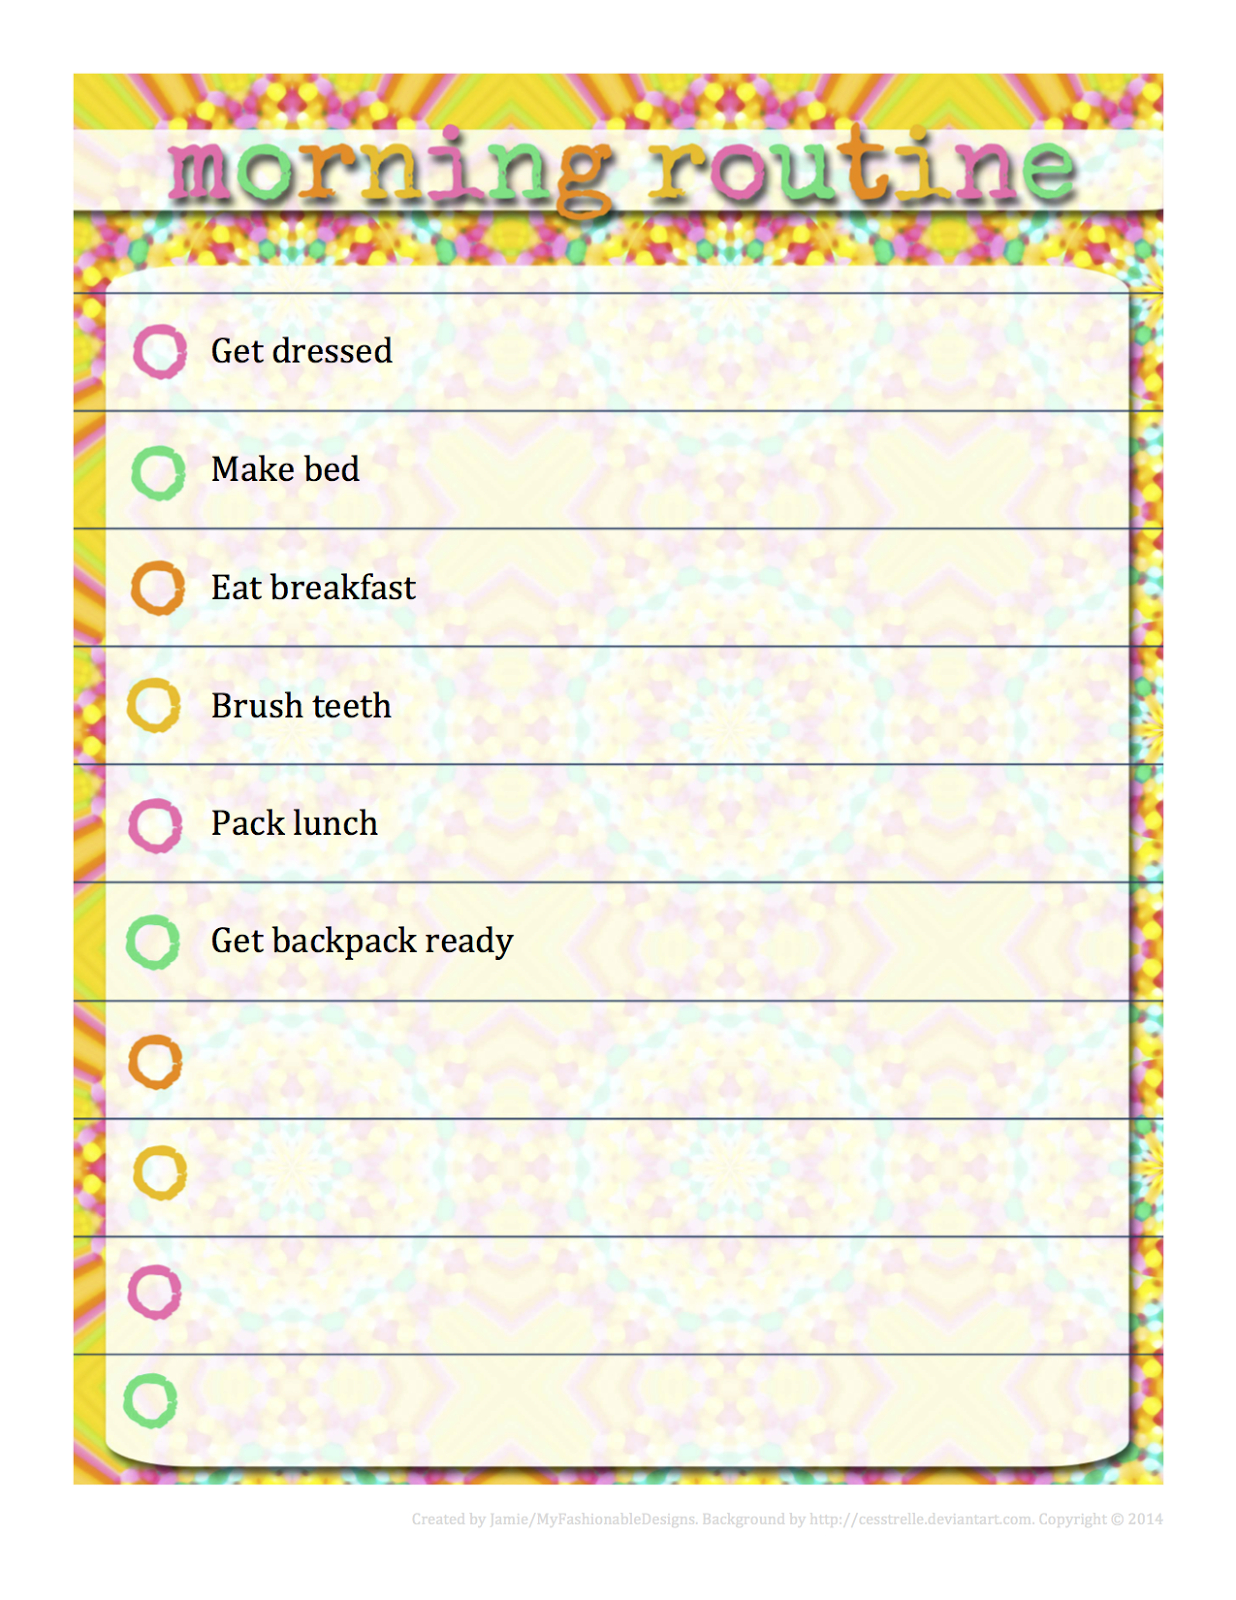 Morning Routine Chart - Free Download - Editable In Word! | Kids - Free Printable Morning Routine Chart